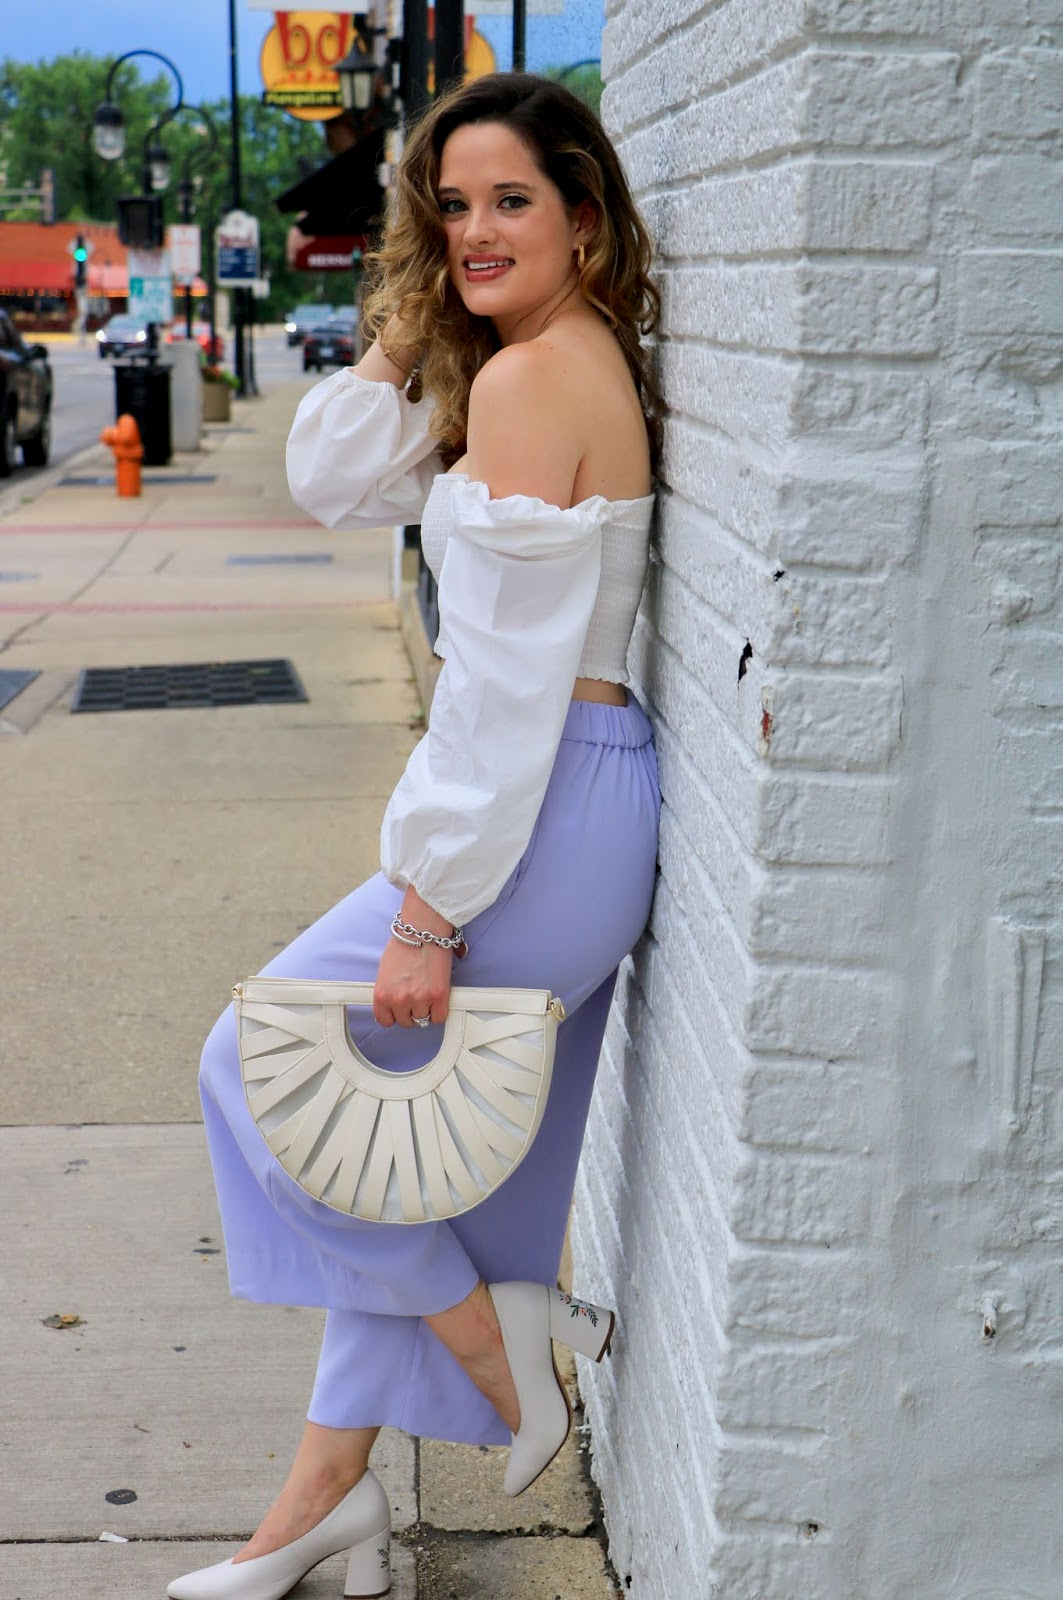 Nyc fashion blogger Kathleen Harper wearing a white Aritzia crop top.